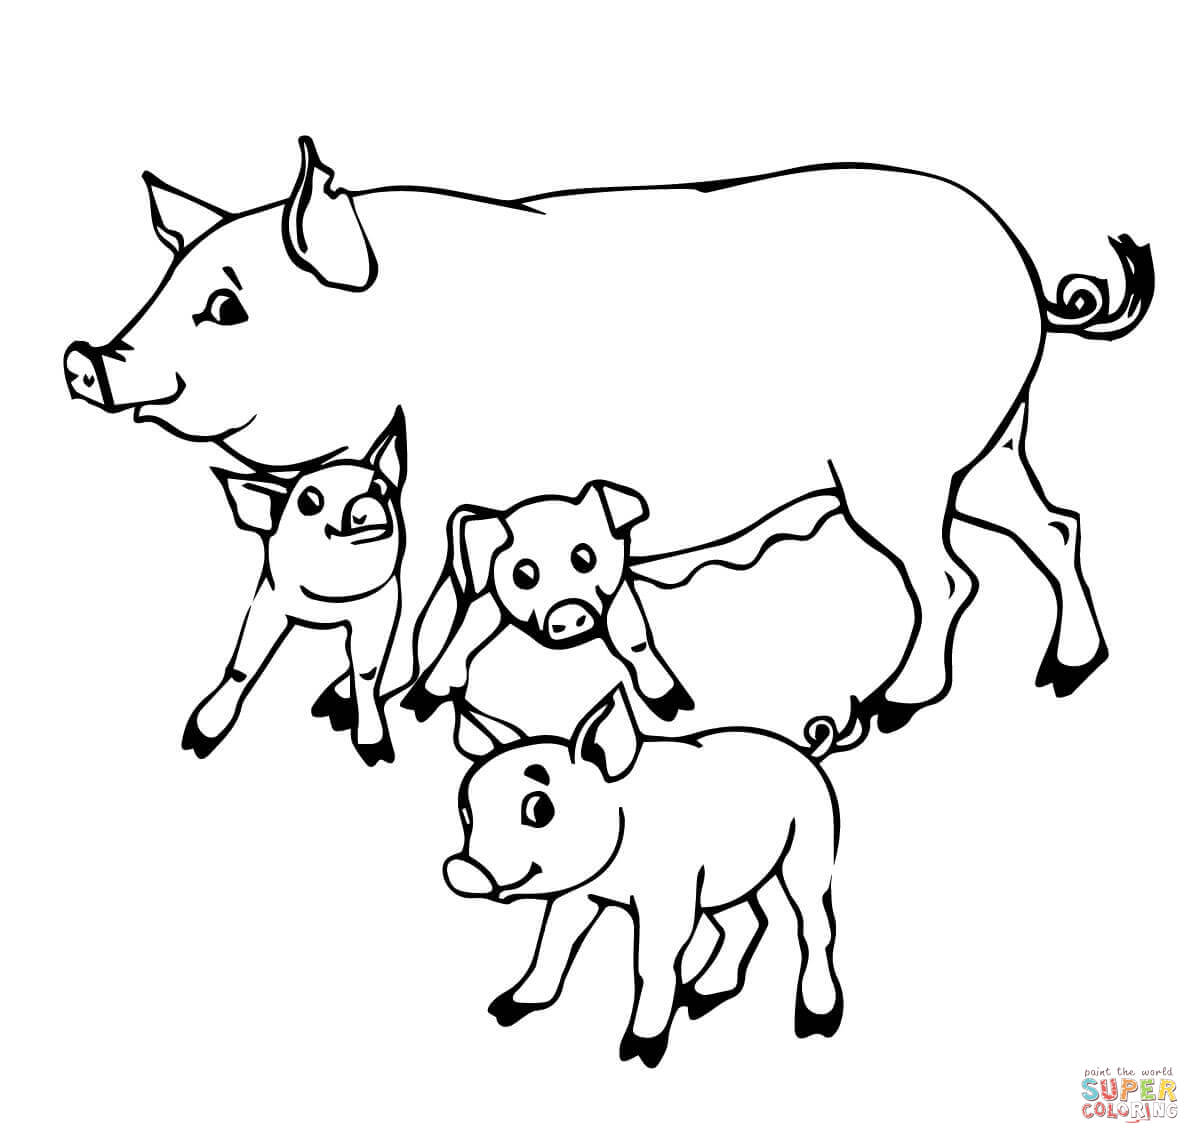 1200x1144 Pig Mother And Baby Pigs Coloring Page Free Printable Coloring Pages